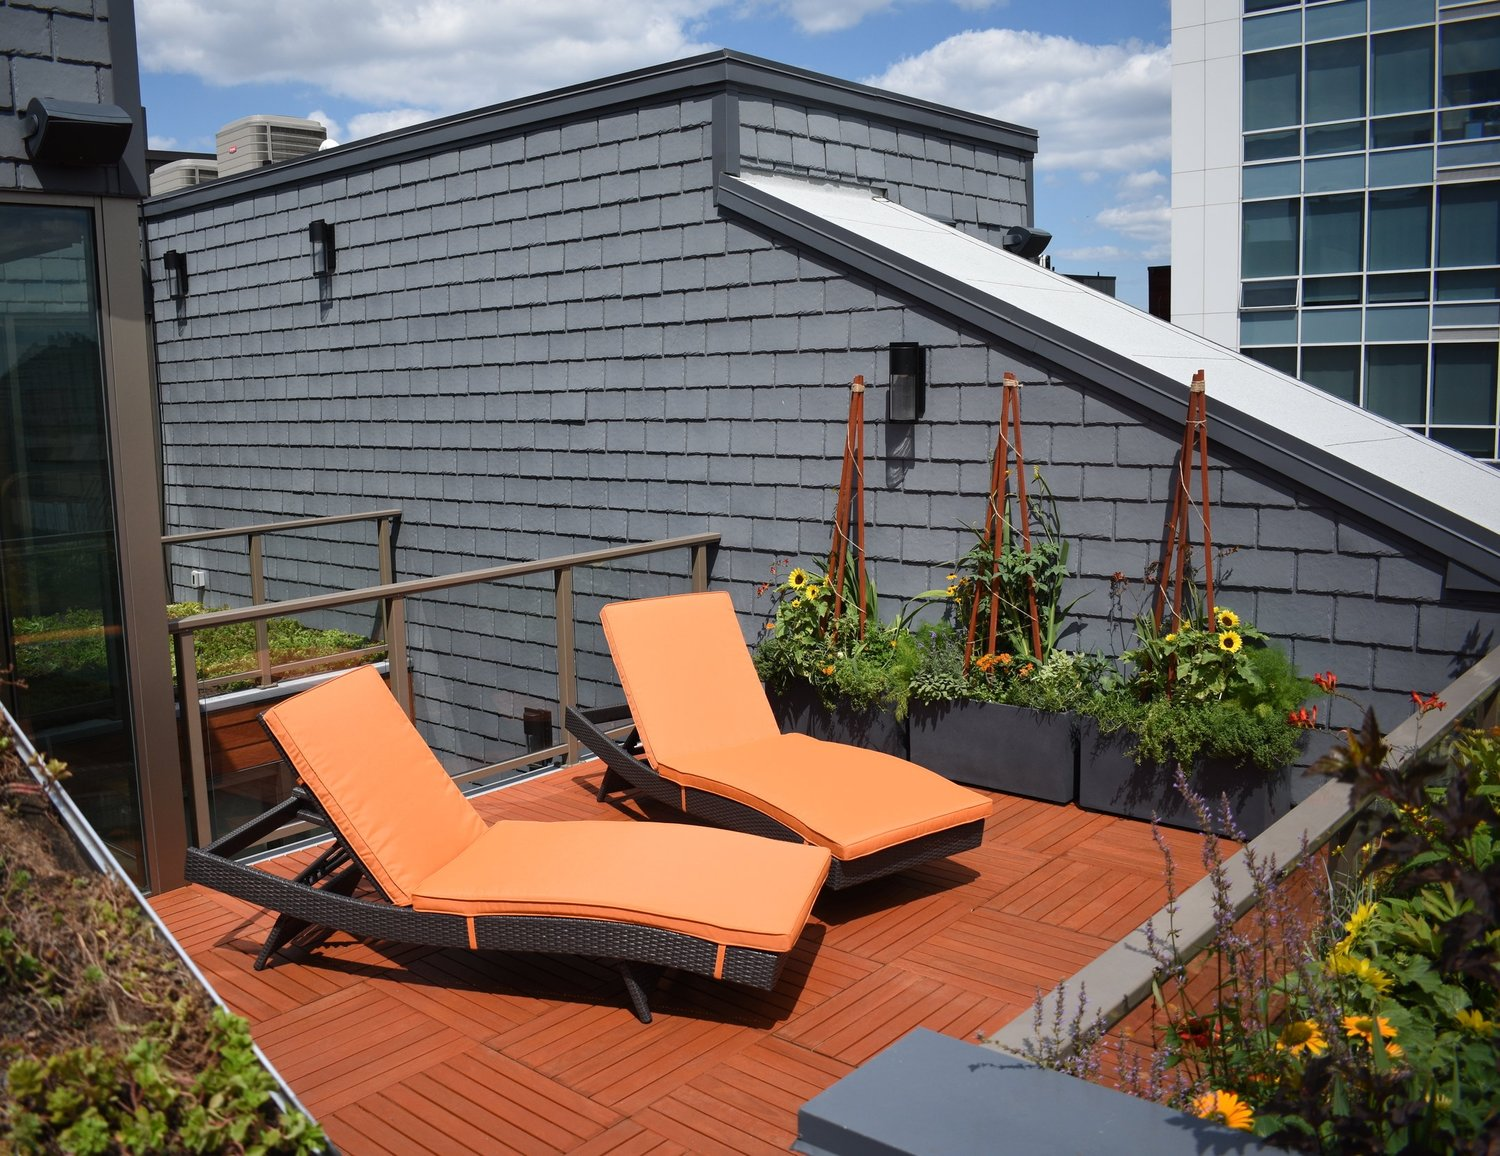 Green roof deck design by Urban Jungle in Philadelphia.